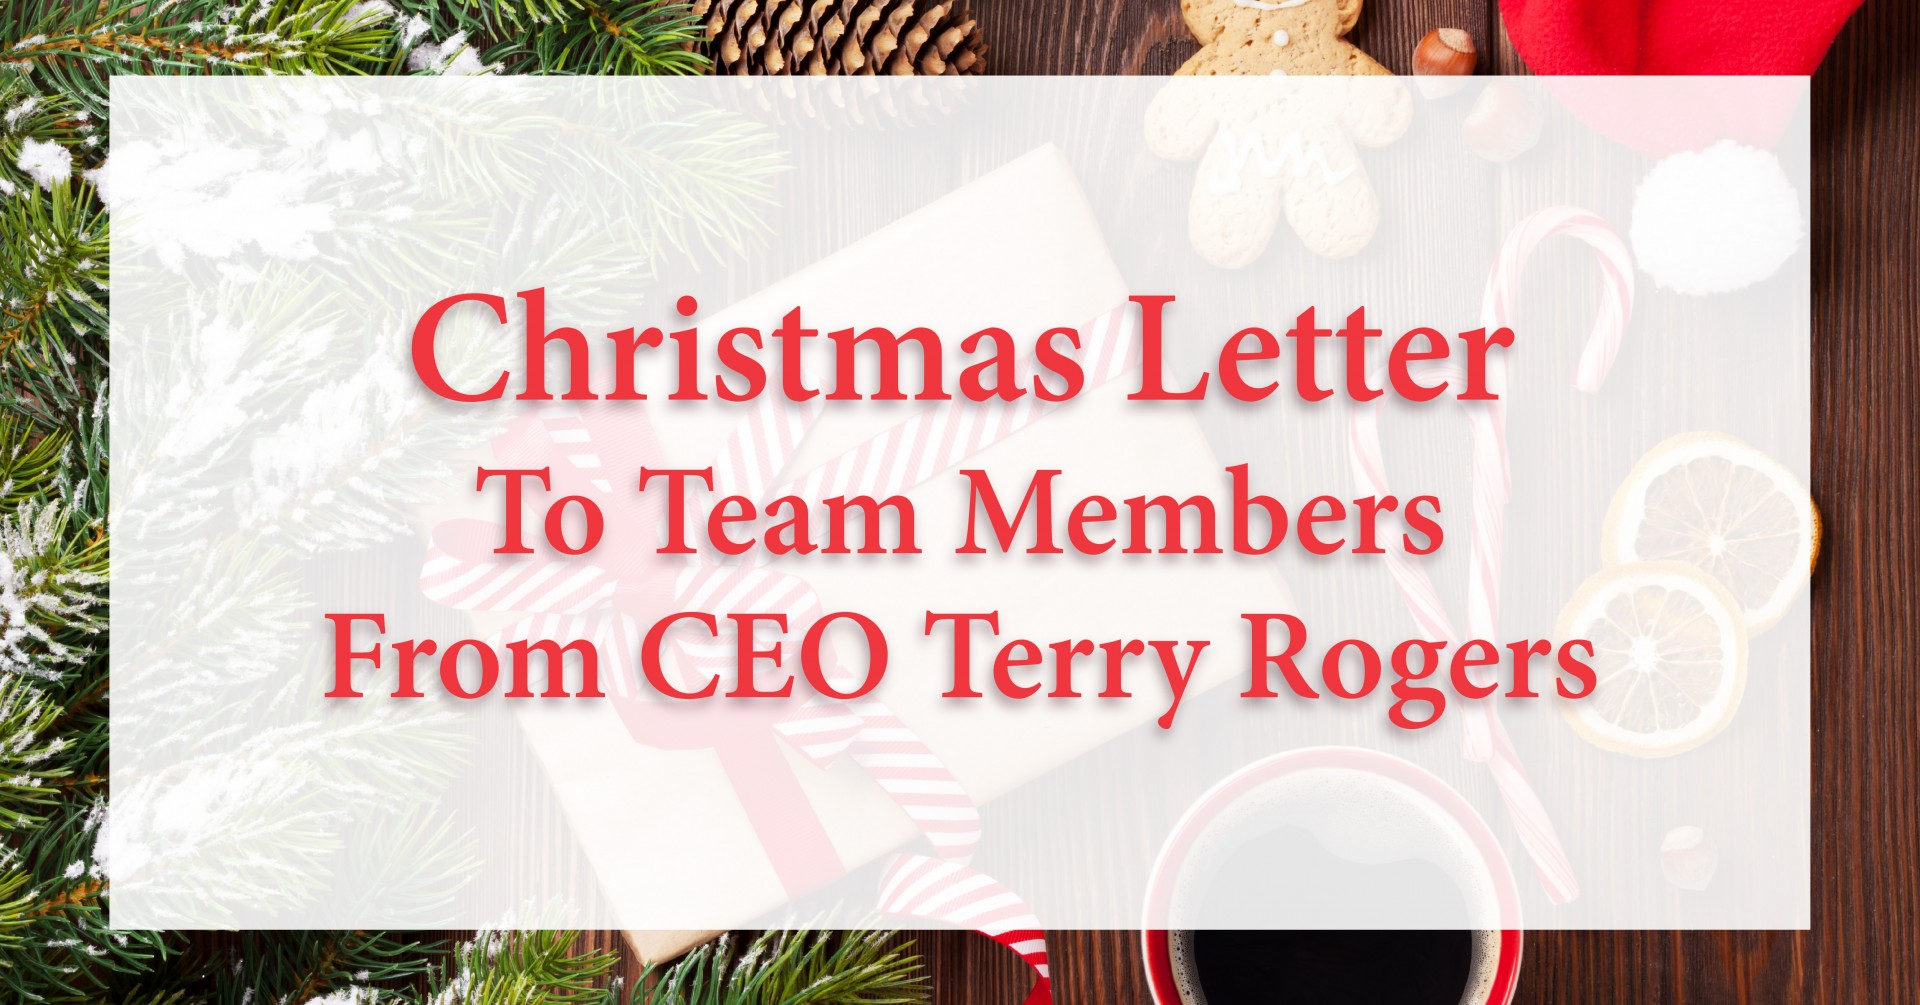 Christmas Letter to Team Members From CEO Terry Rogers